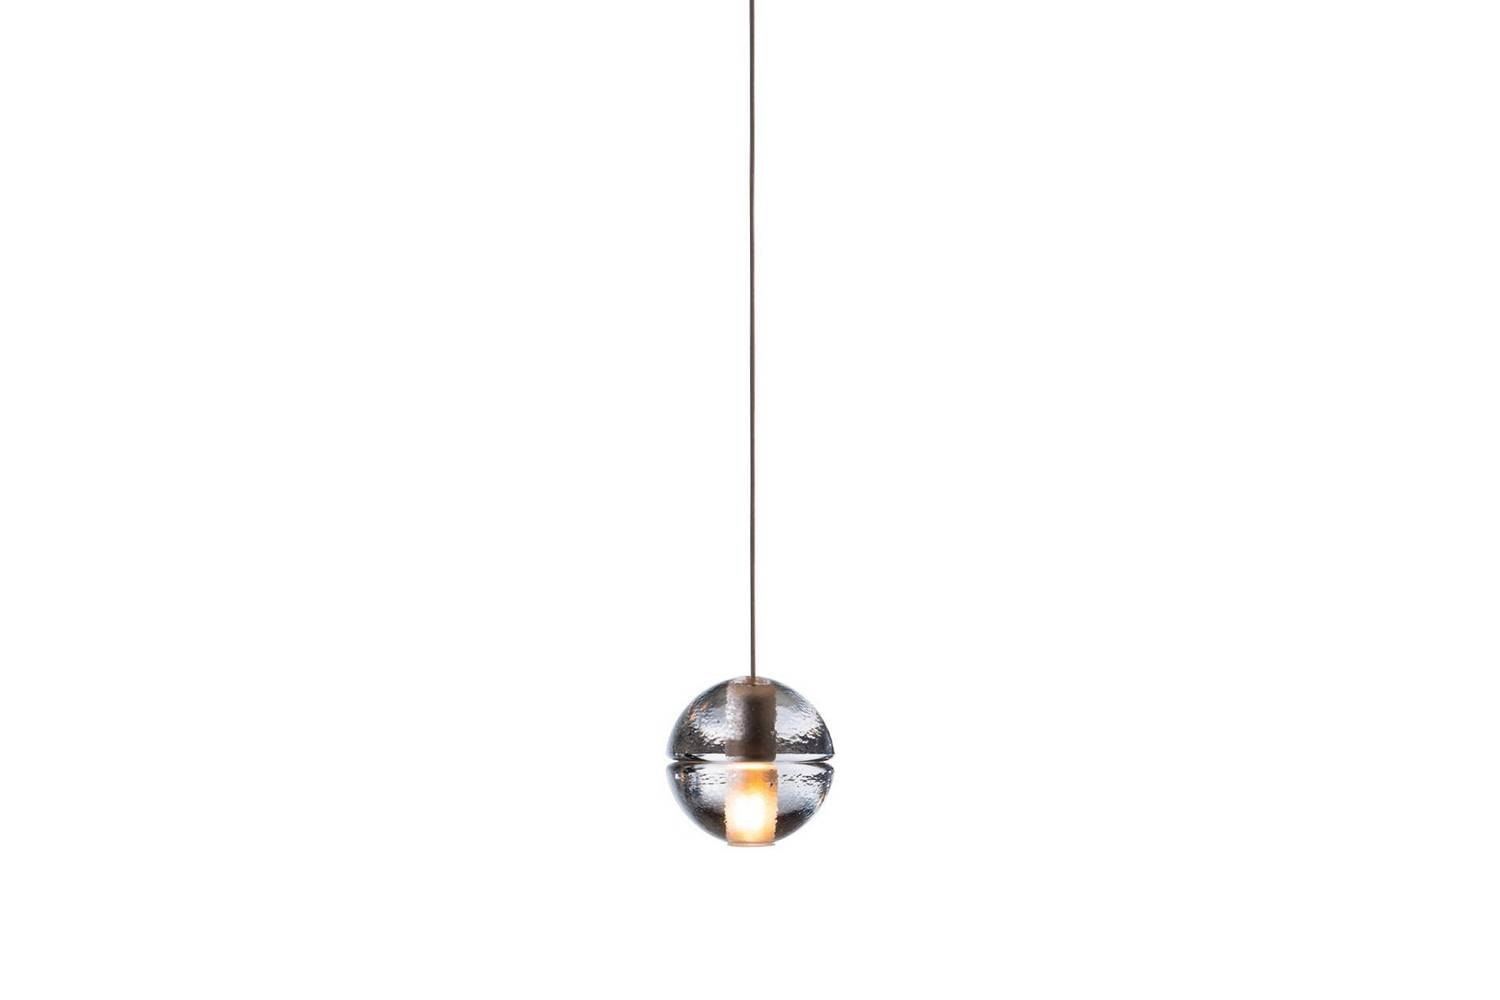 14.1 Standard Suspension Lamp by Omer Arbel for Bocci